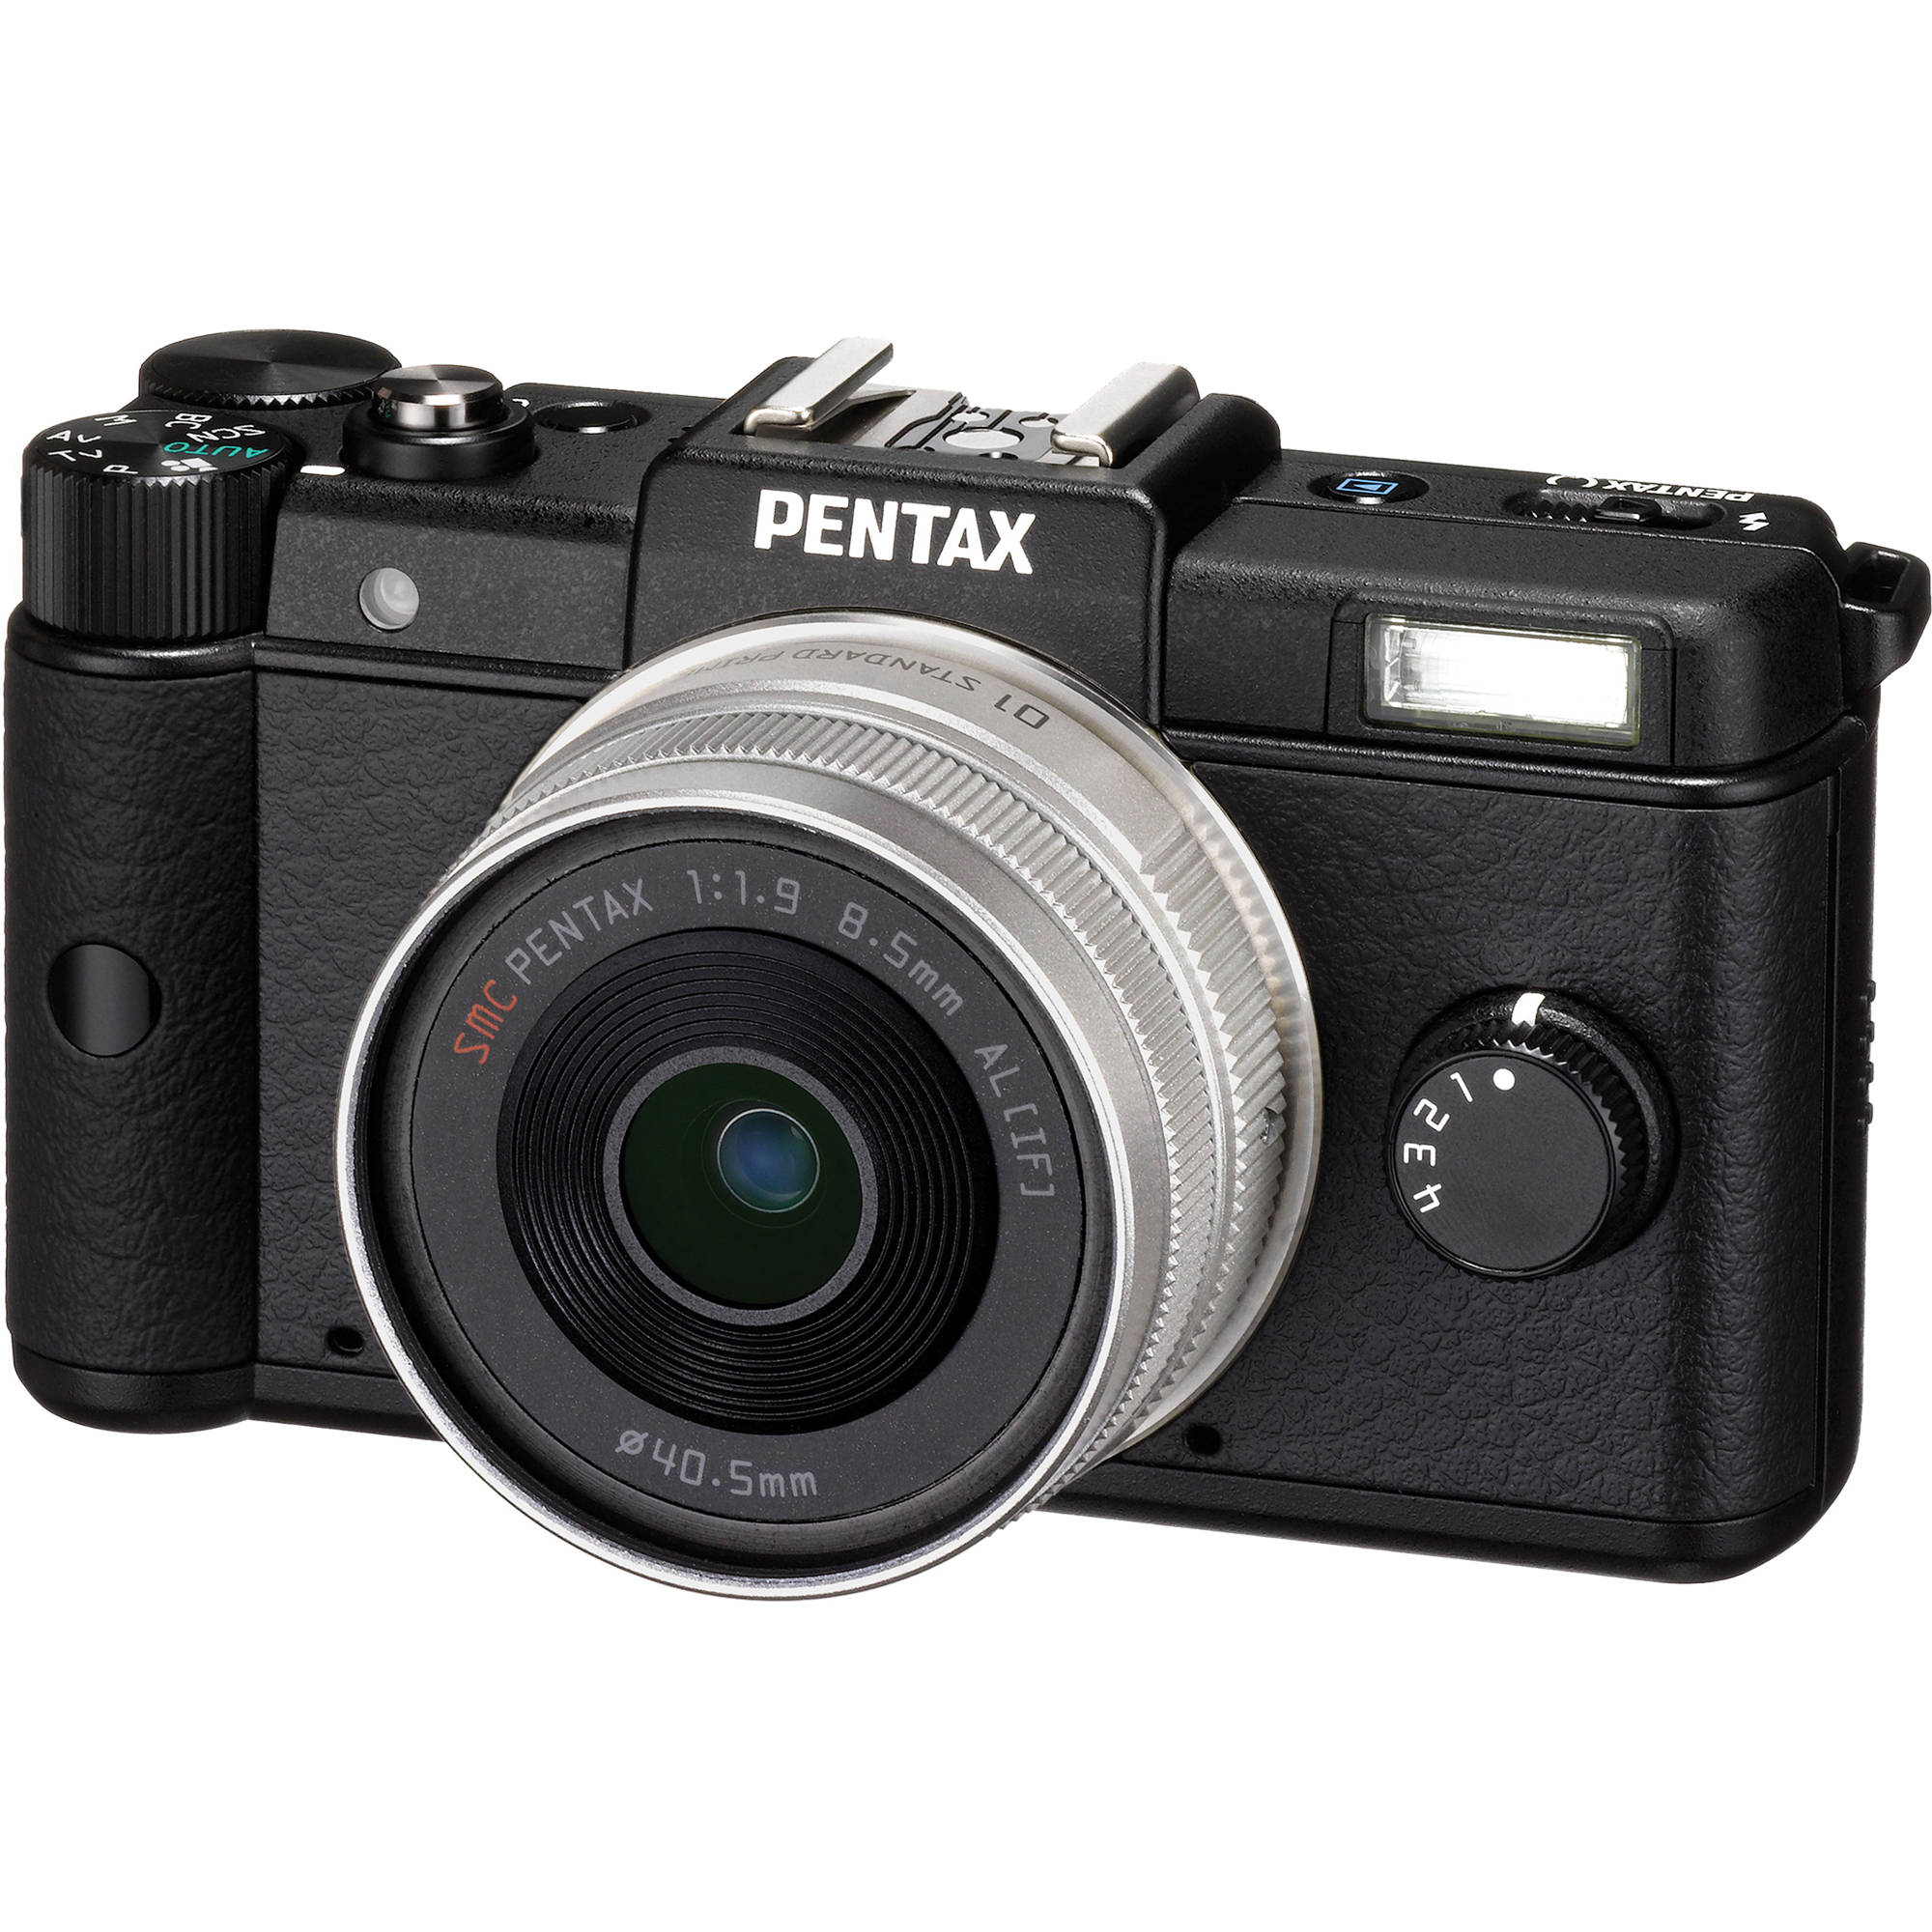 PENTAX Q10 CAMERA DRIVER FOR WINDOWS 7